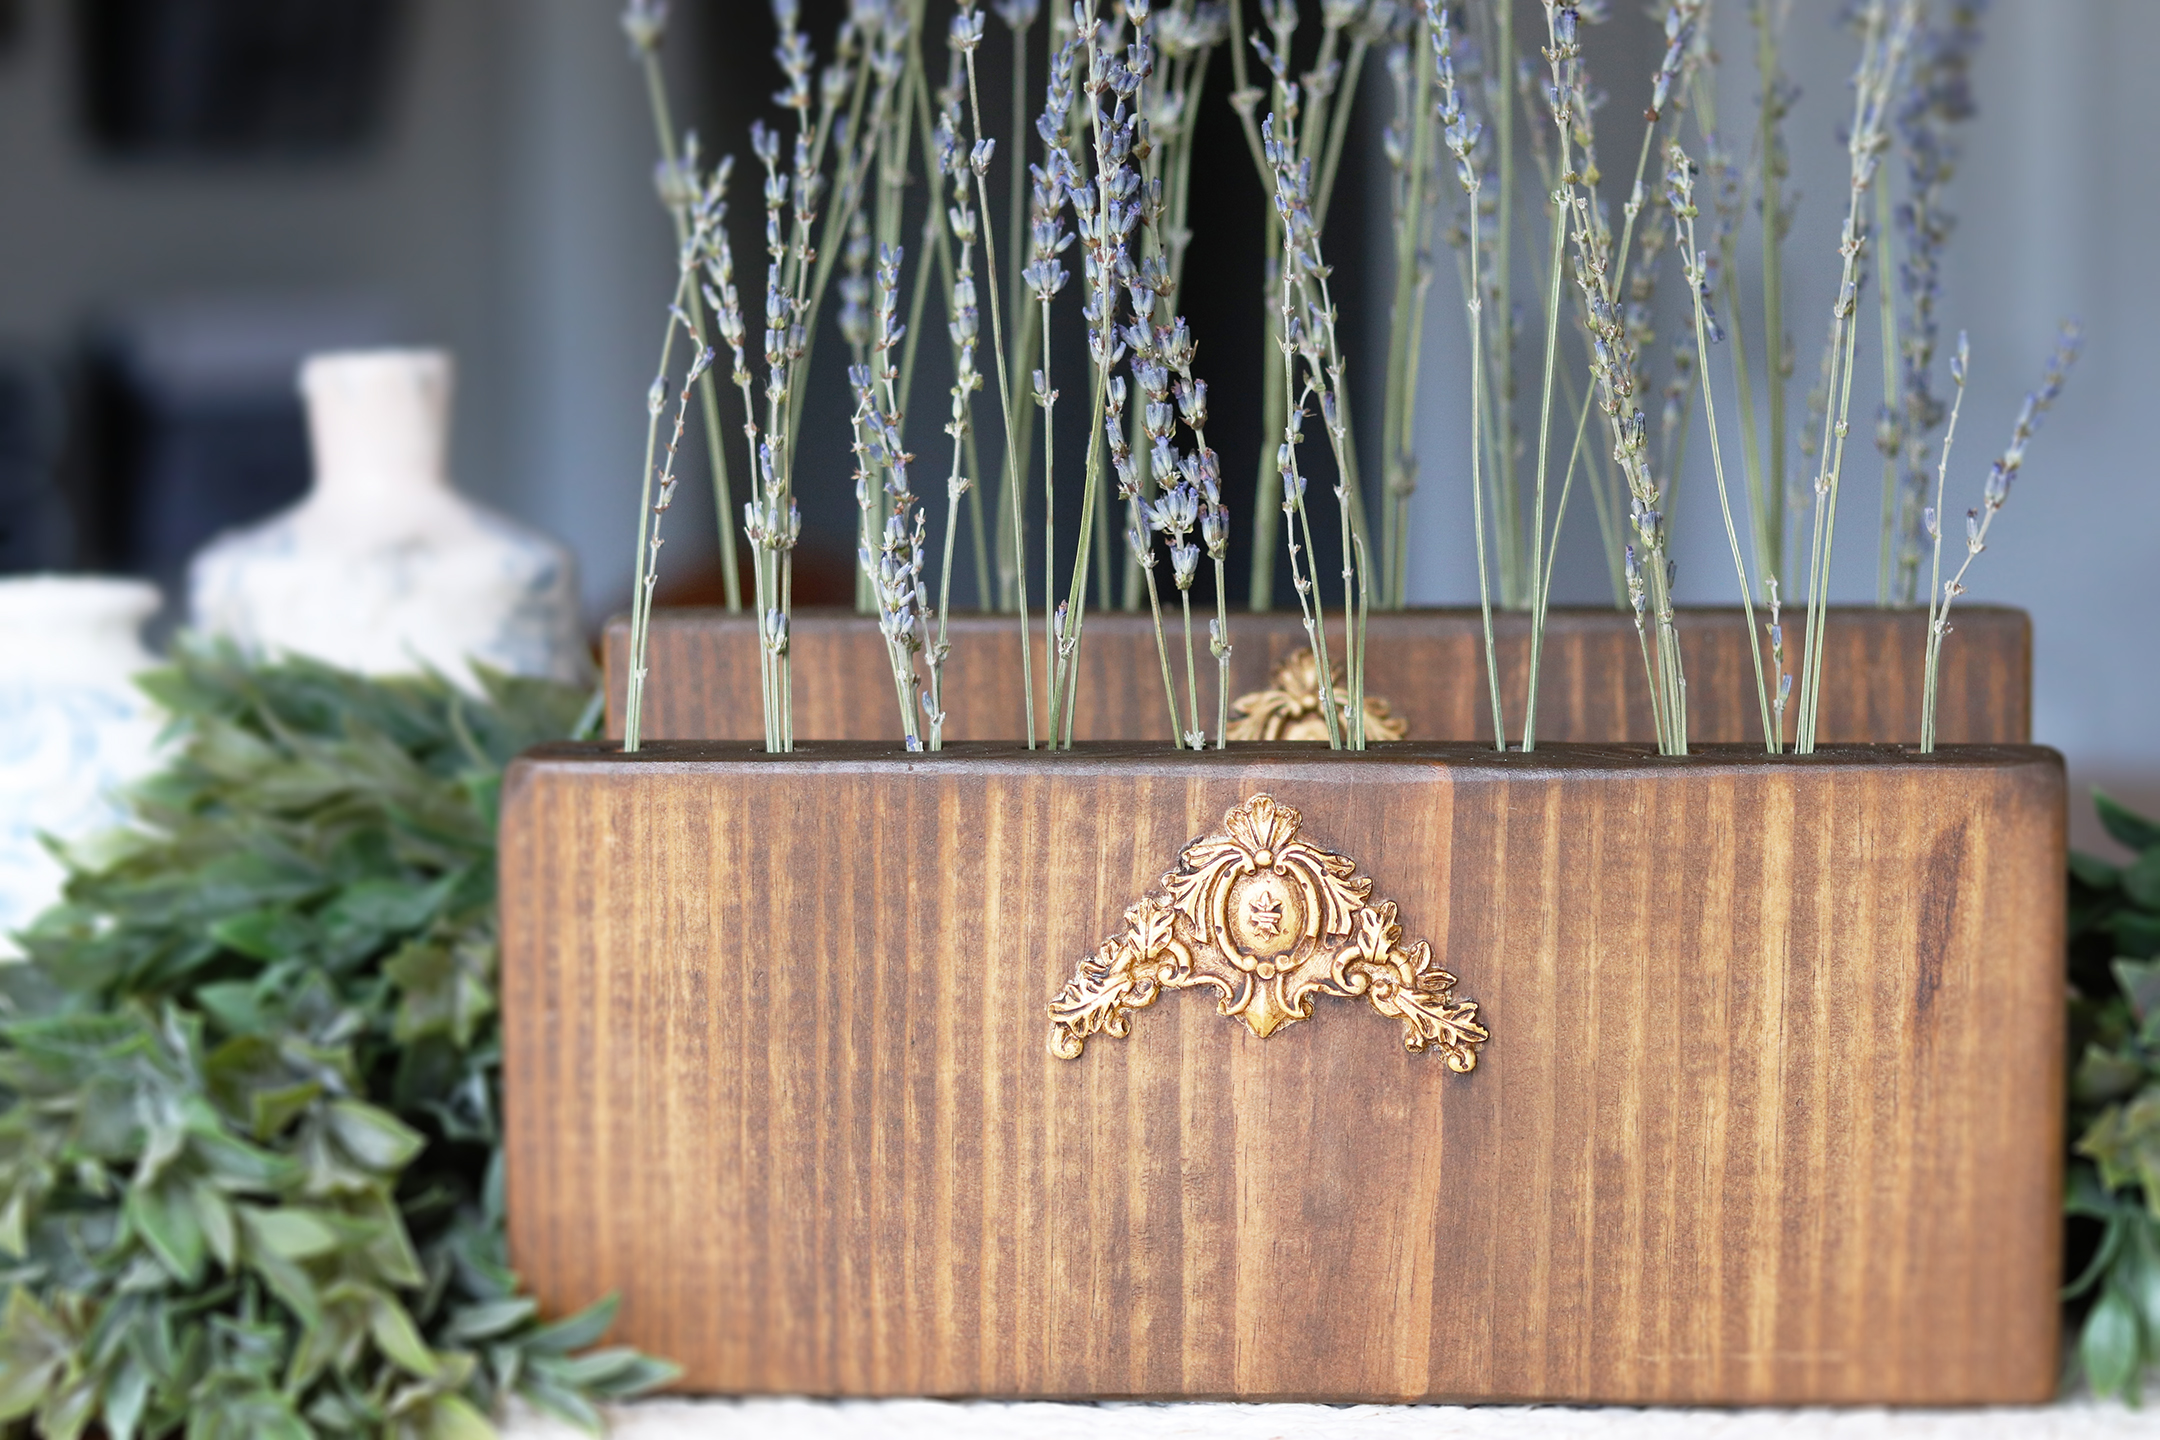 Boroughfare Home Vintage Home Decor with Lavender and Wood